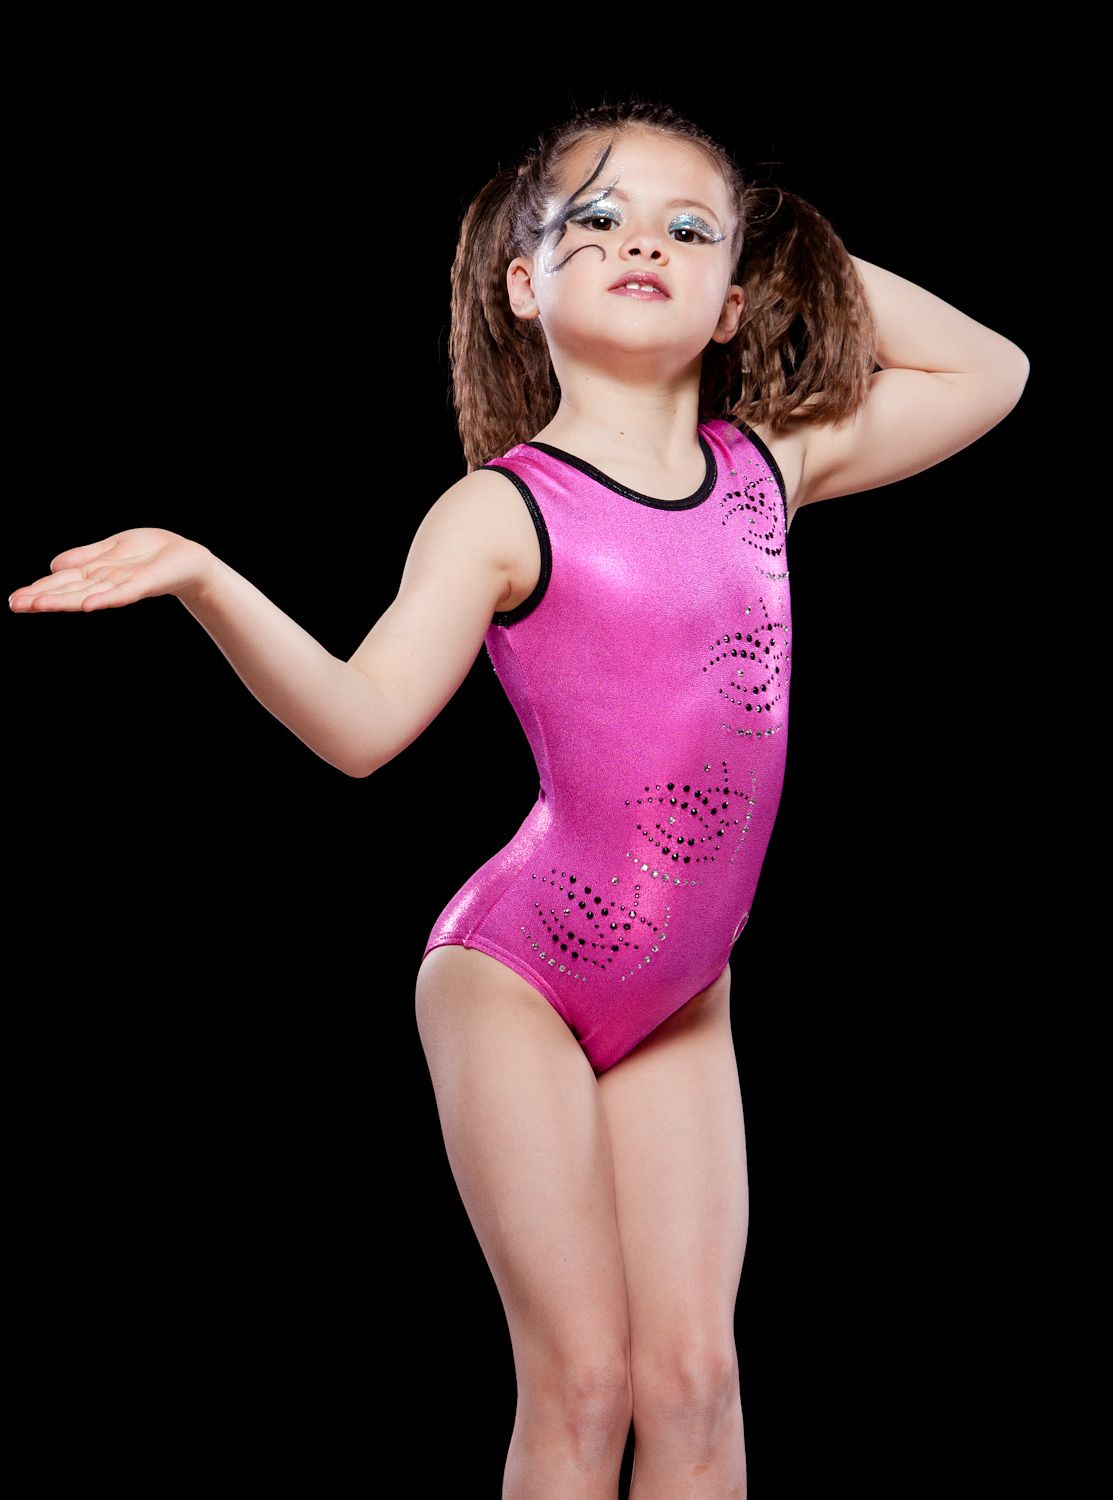 Gymnastics Leotards for Girls Sparkle Spliced Dancing Athletic with Hair Scrunchie. from $ 12 99 Prime. out of 5 stars DAXIANG. Athletic Leotard for Little Girls Sparkles Dance Clothes Ballet Tutu Years. from $ 7 99 Prime. out of 5 stars HOUZI.